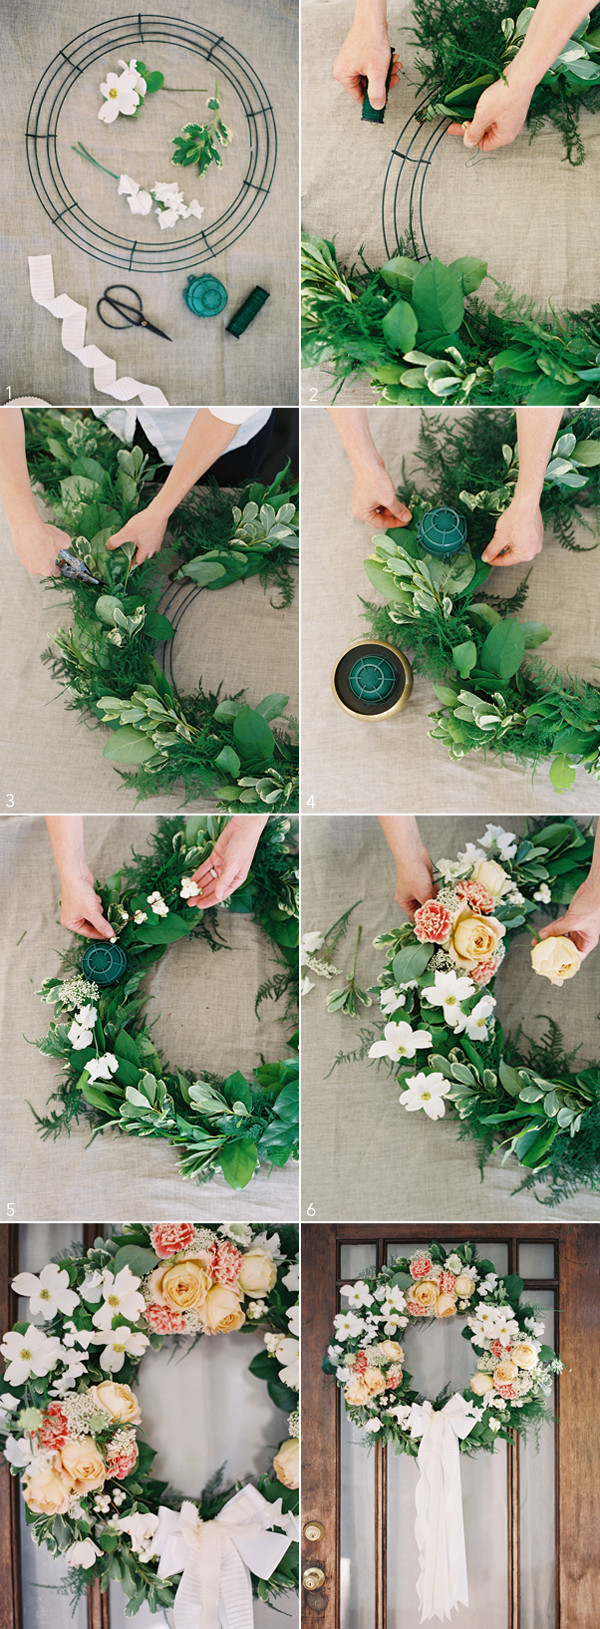 Best ideas about DIY Wedding Decorations . Save or Pin DIY Wedding Wreath ce Wed Now.